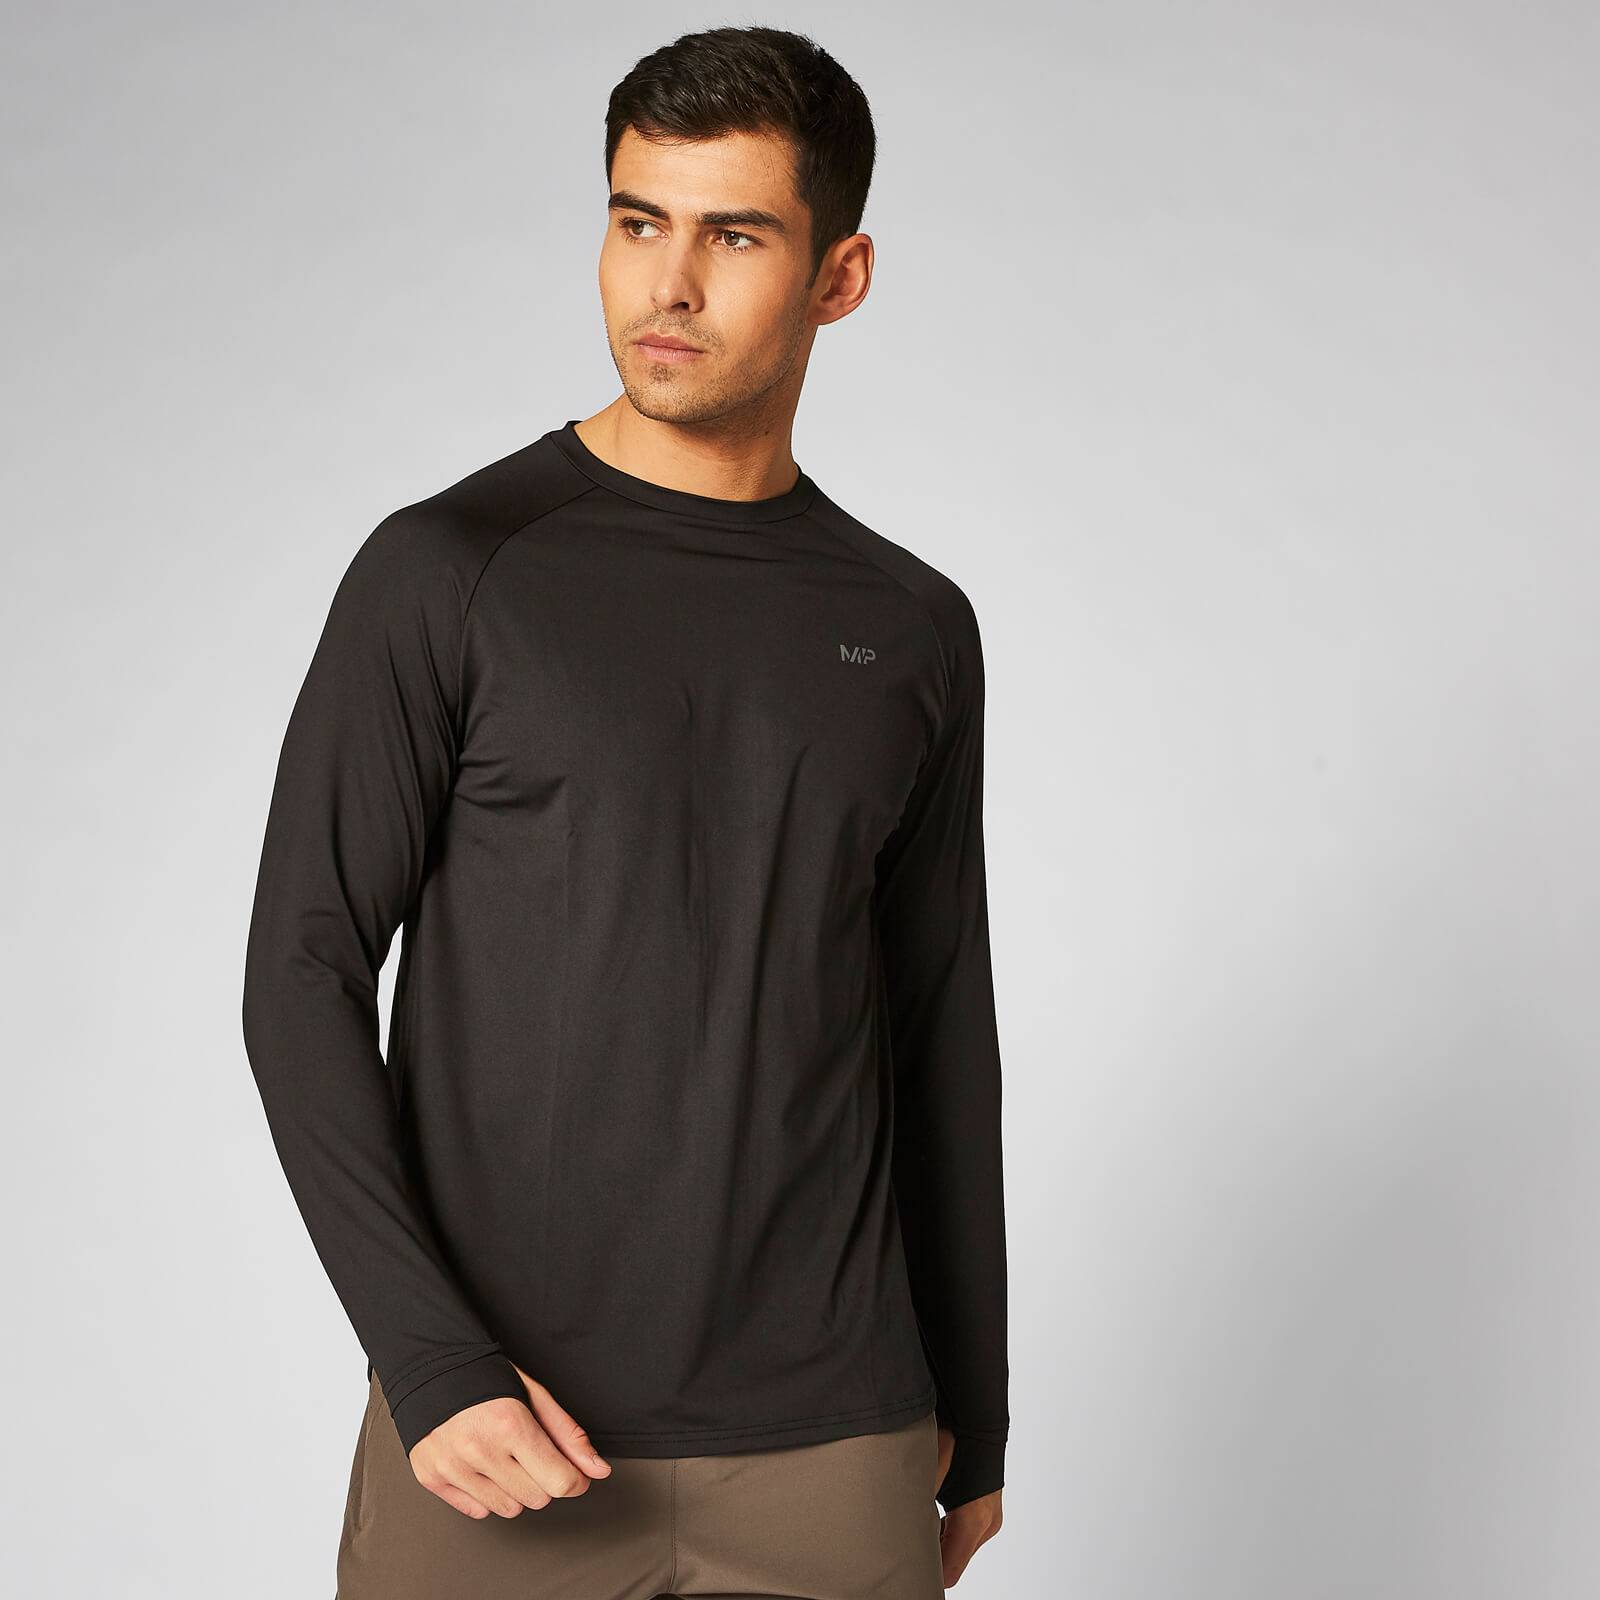 Myprotein Dry-Tech Infinity Long-Sleeve T-Shirt – Black - XXL